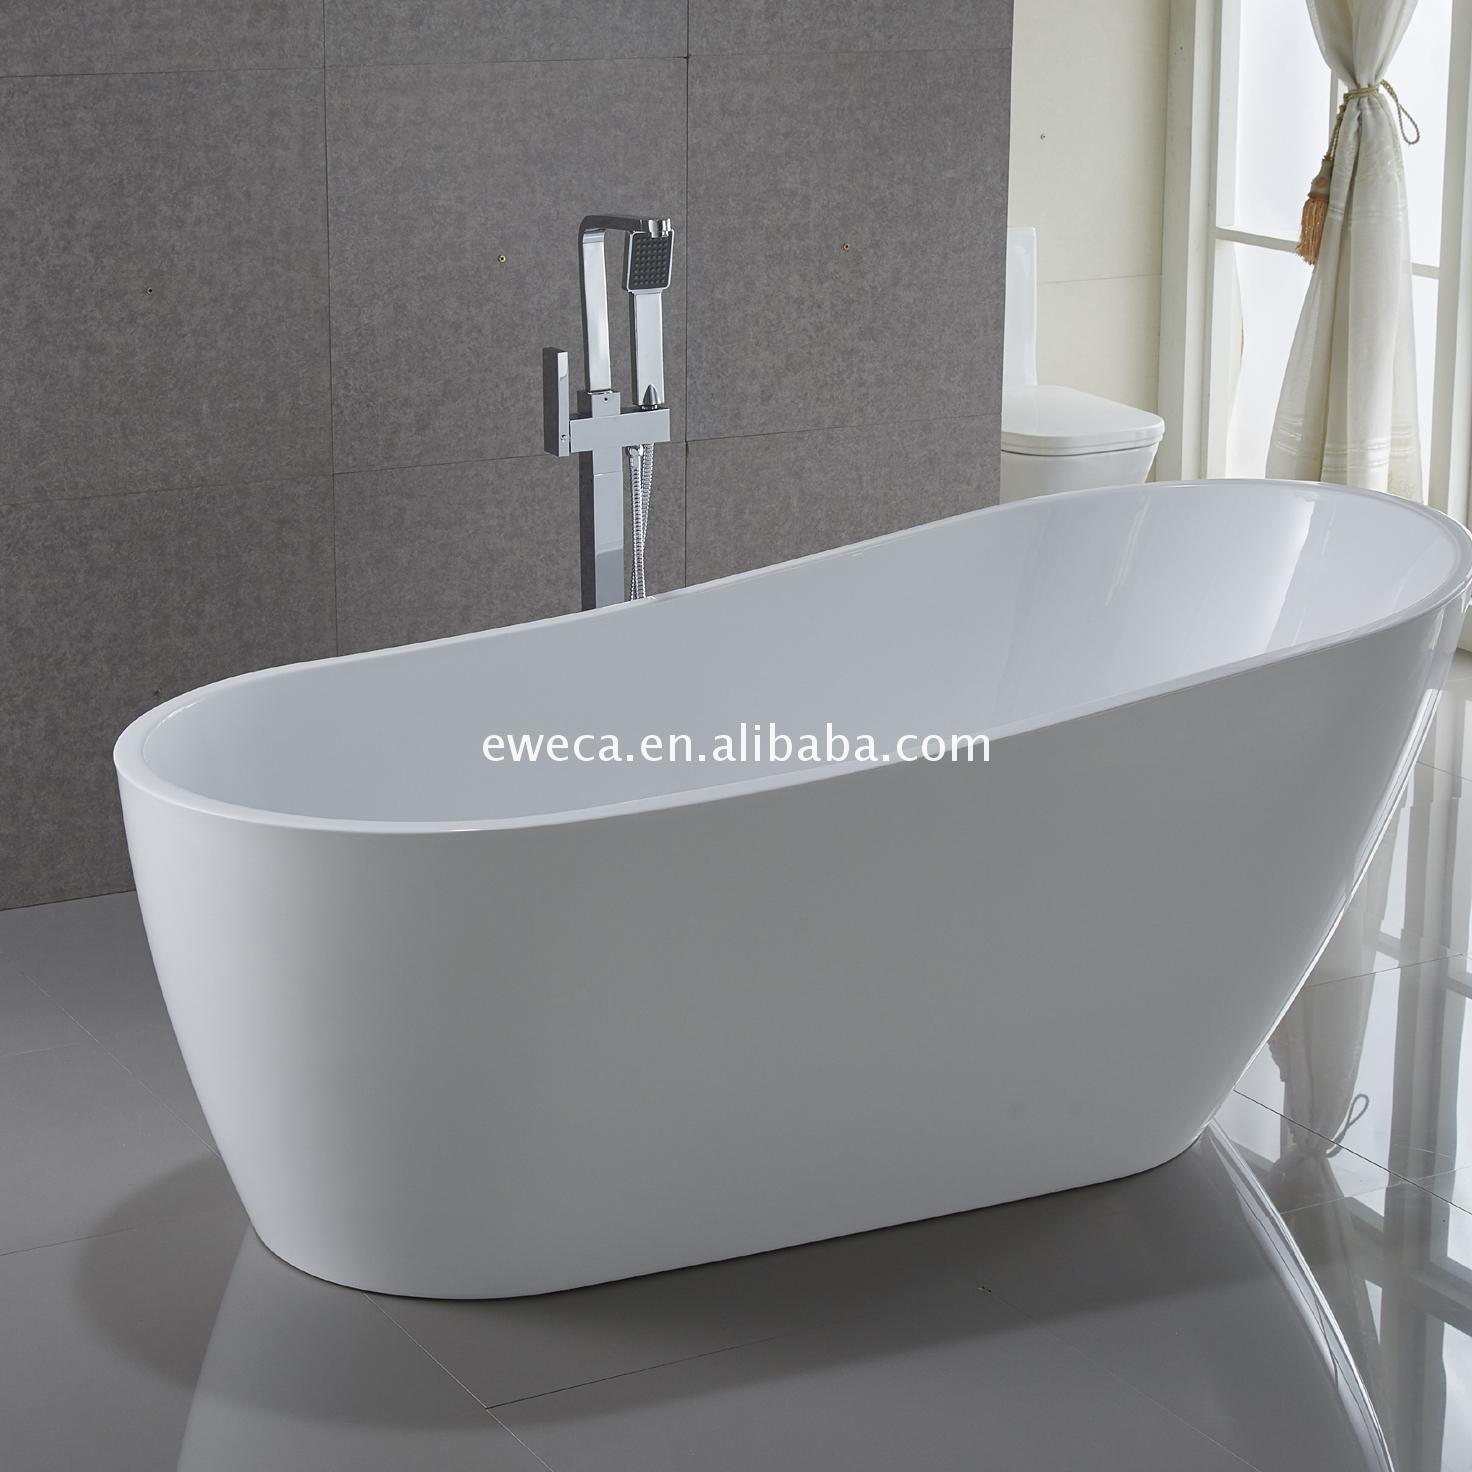 Hammered Copper Bathtub Hammered Copper Bathtub Suppliers and